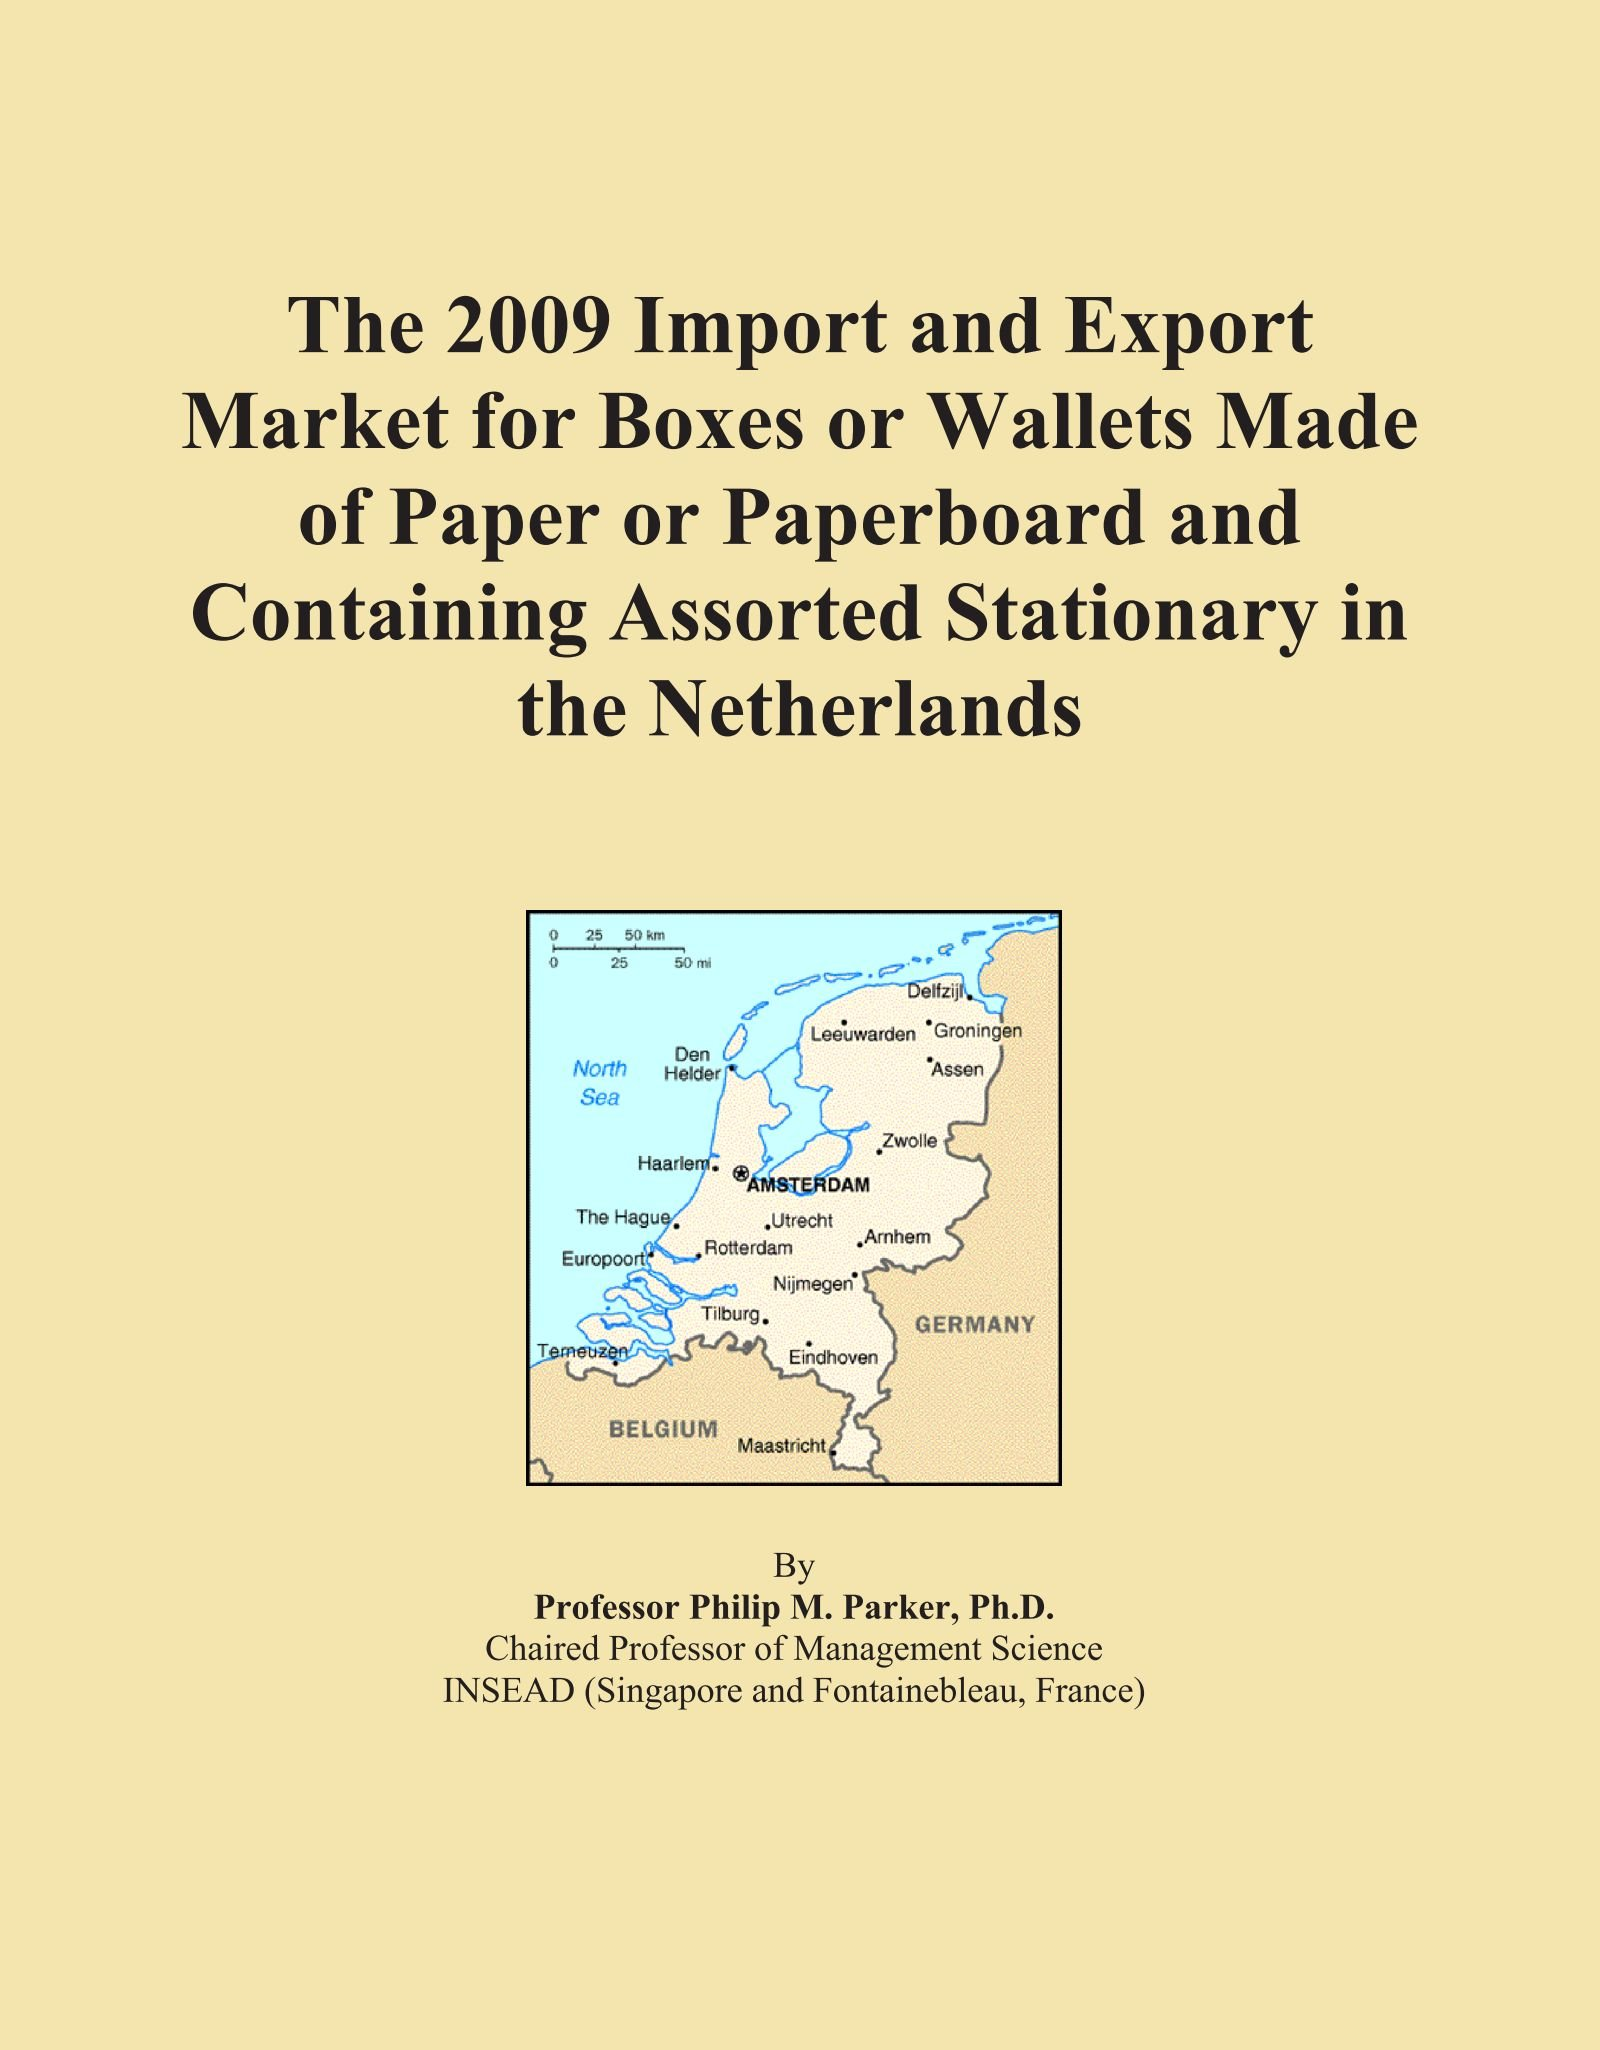 Download The 2009 Import and Export Market for Boxes or Wallets Made of Paper or Paperboard and Containing Assorted Stationary in the Netherlands PDF